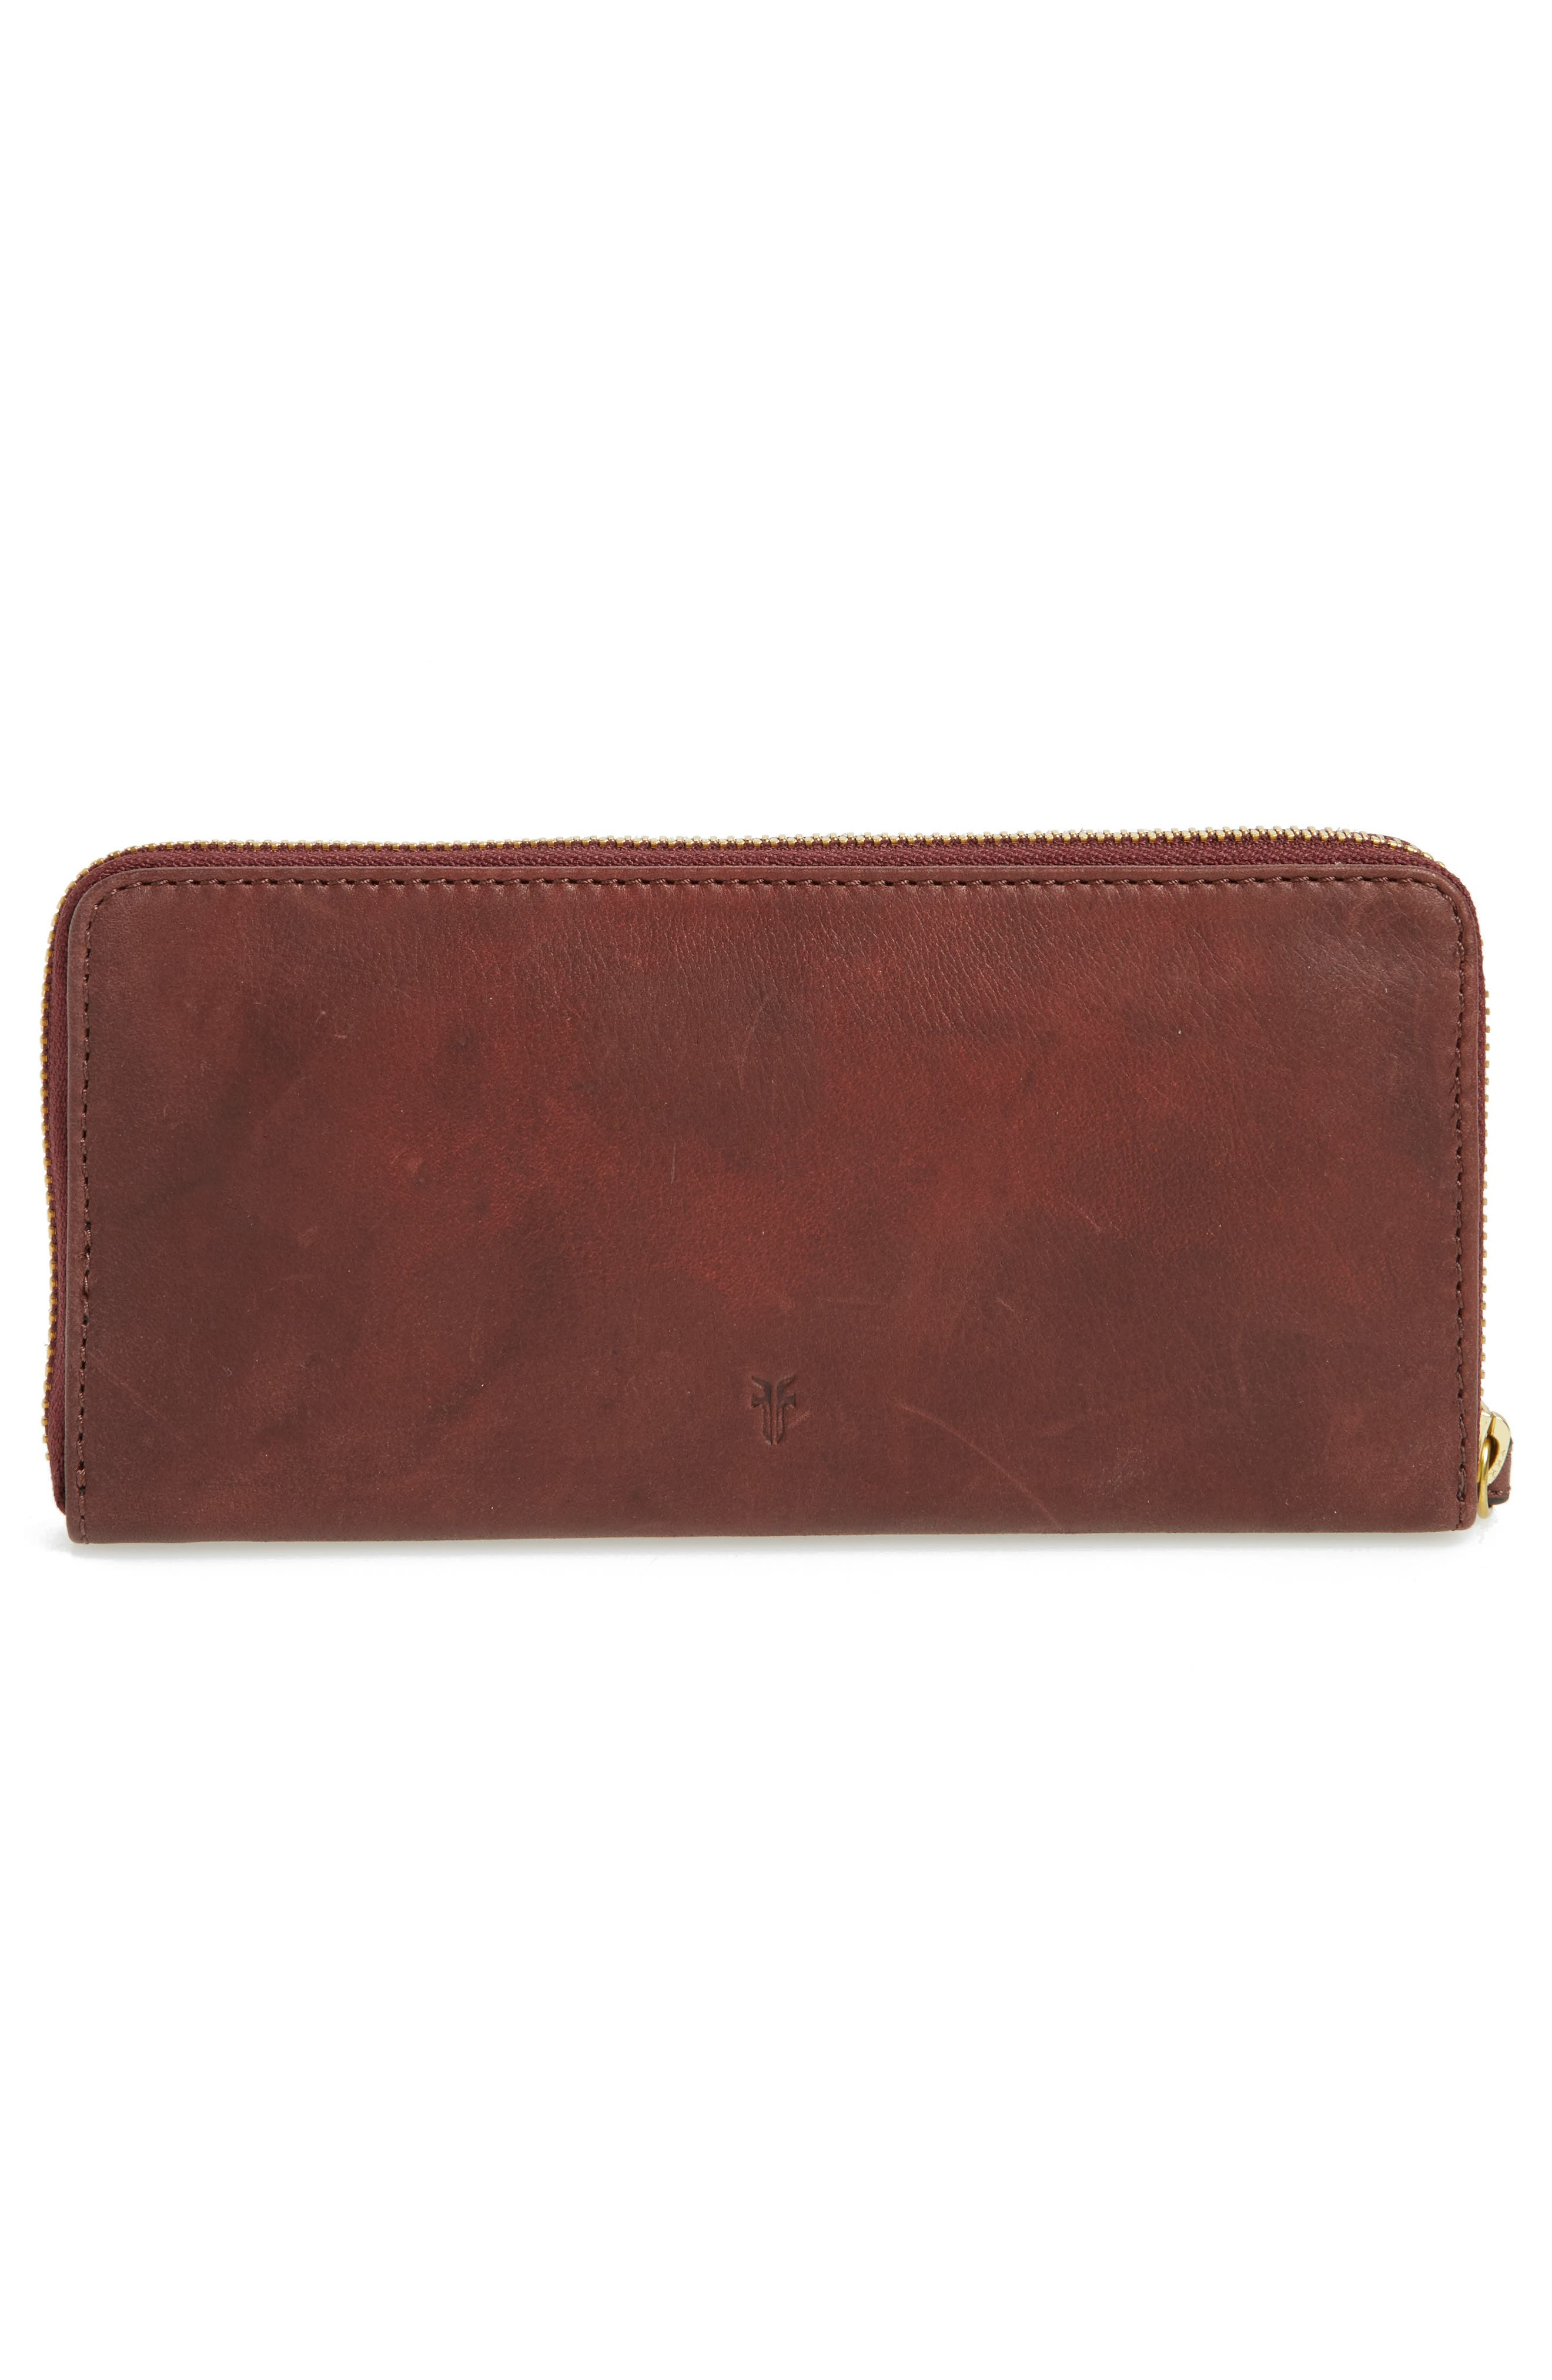 Campus Rivet Leather Continental Zip Wallet,                             Alternate thumbnail 3, color,                             Black Cherry